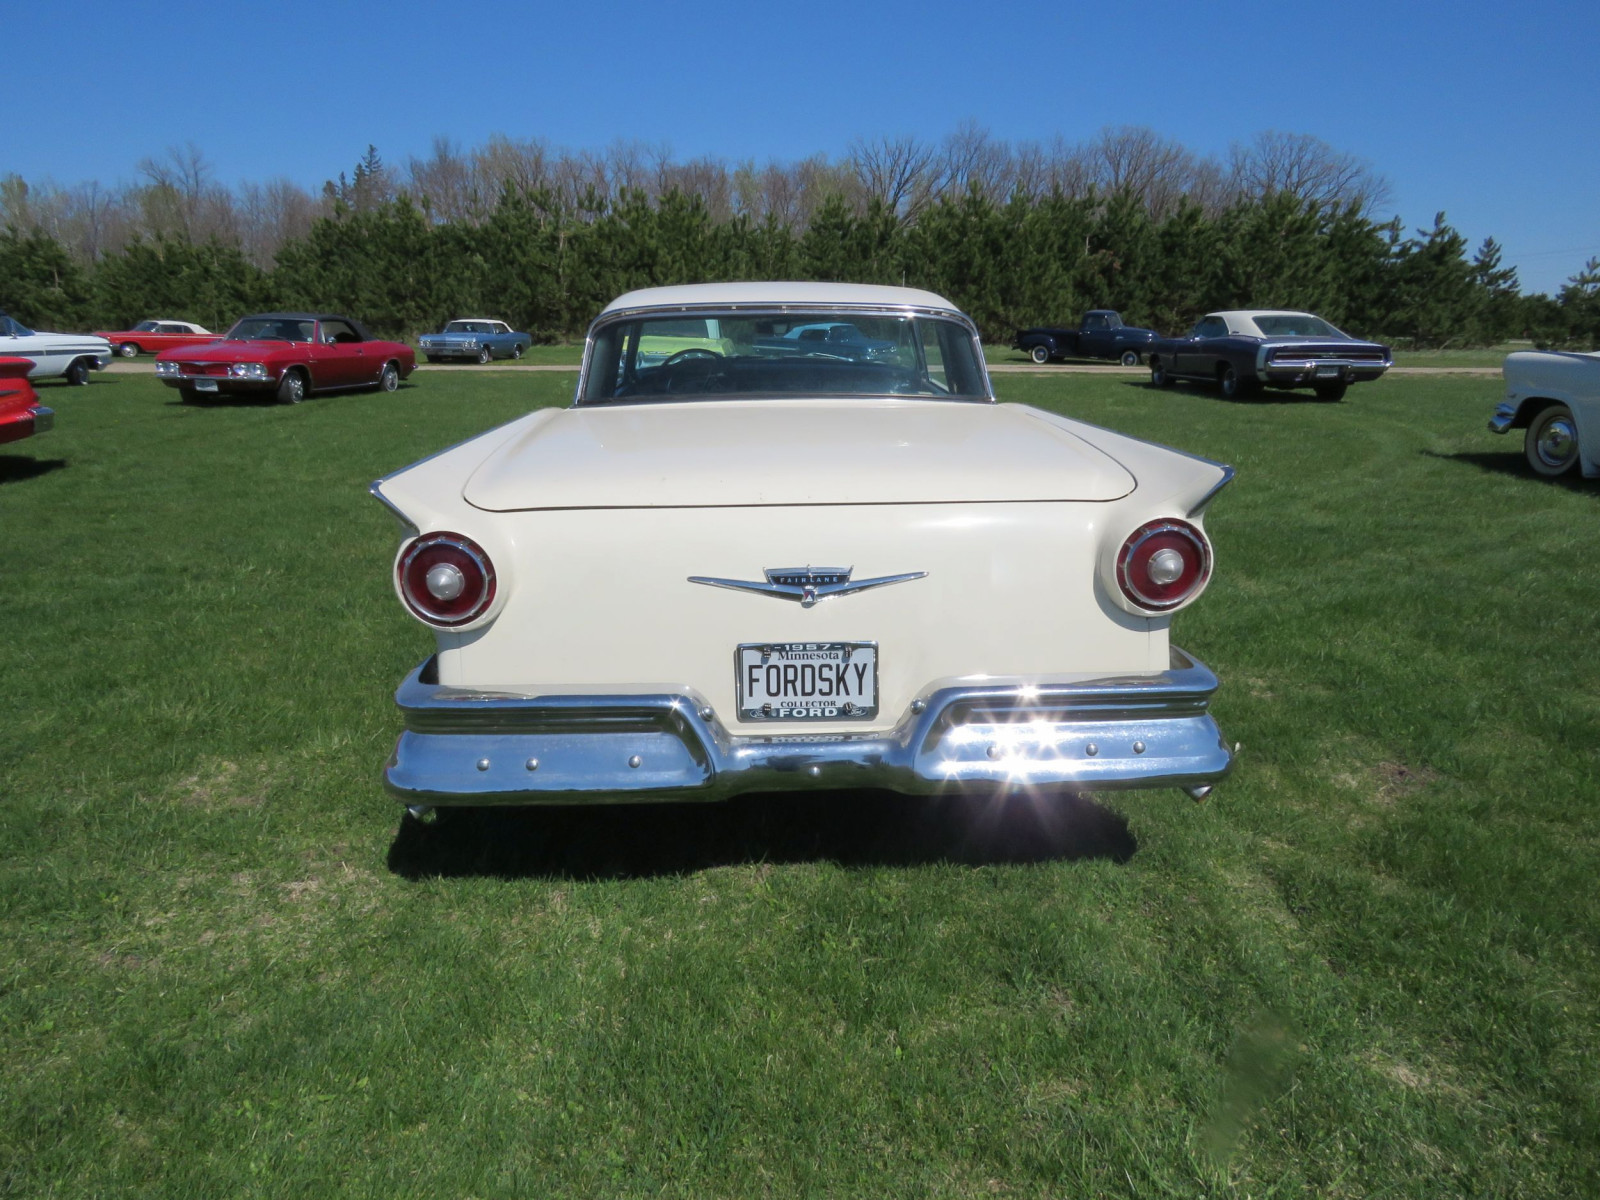 1957 Ford Fairlane 500 Skyliner Retractable Hardtop - Image 7